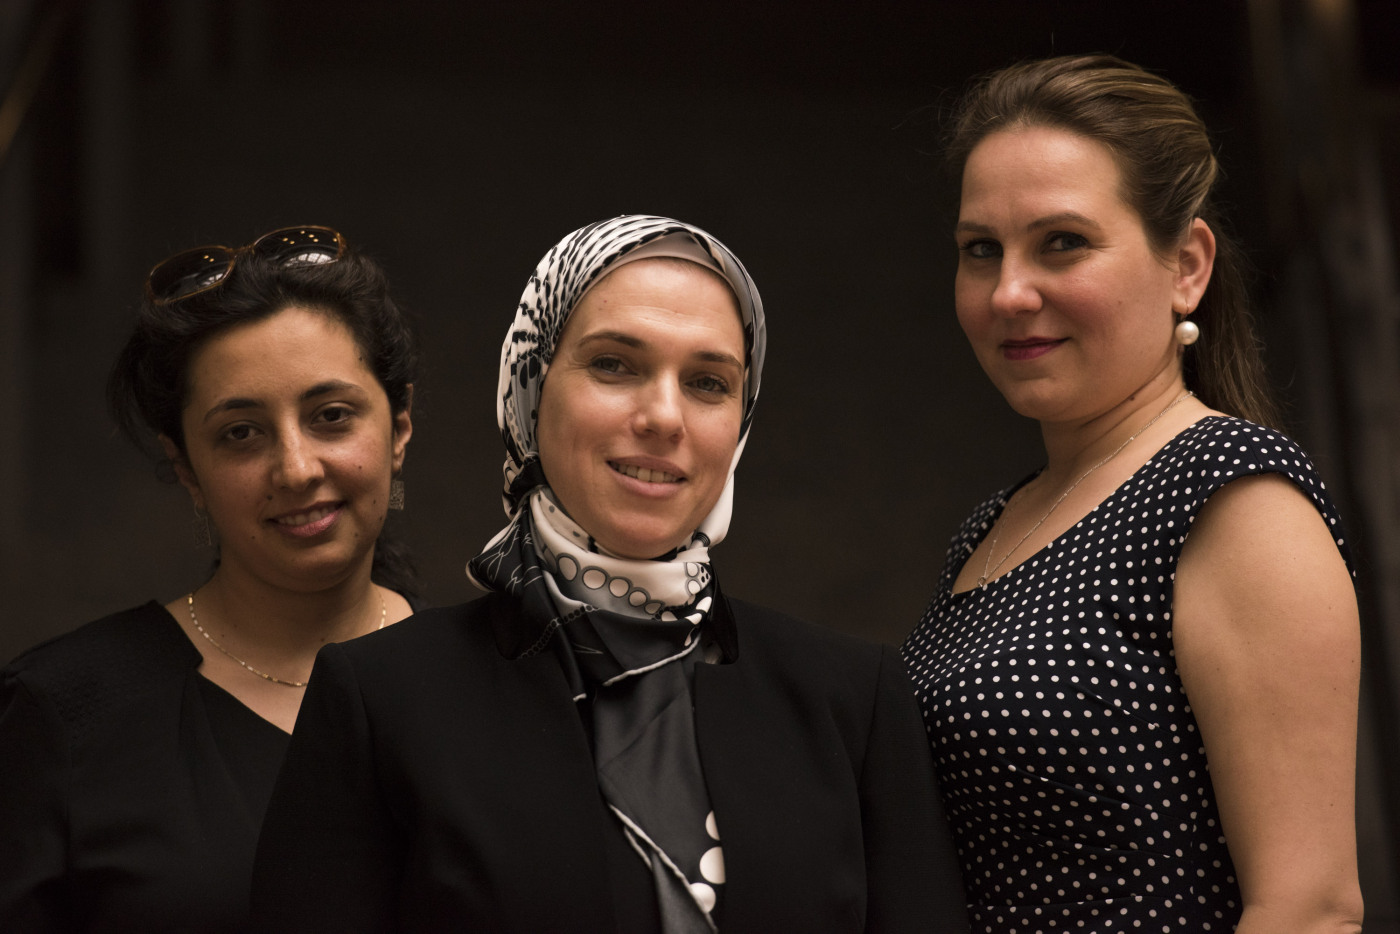 Humanitarians Mariah Abadeh, Houda Atassi and Sandra Bitarova were honored in Washington D.C. by CARE. (Carey Wagner/CARE)